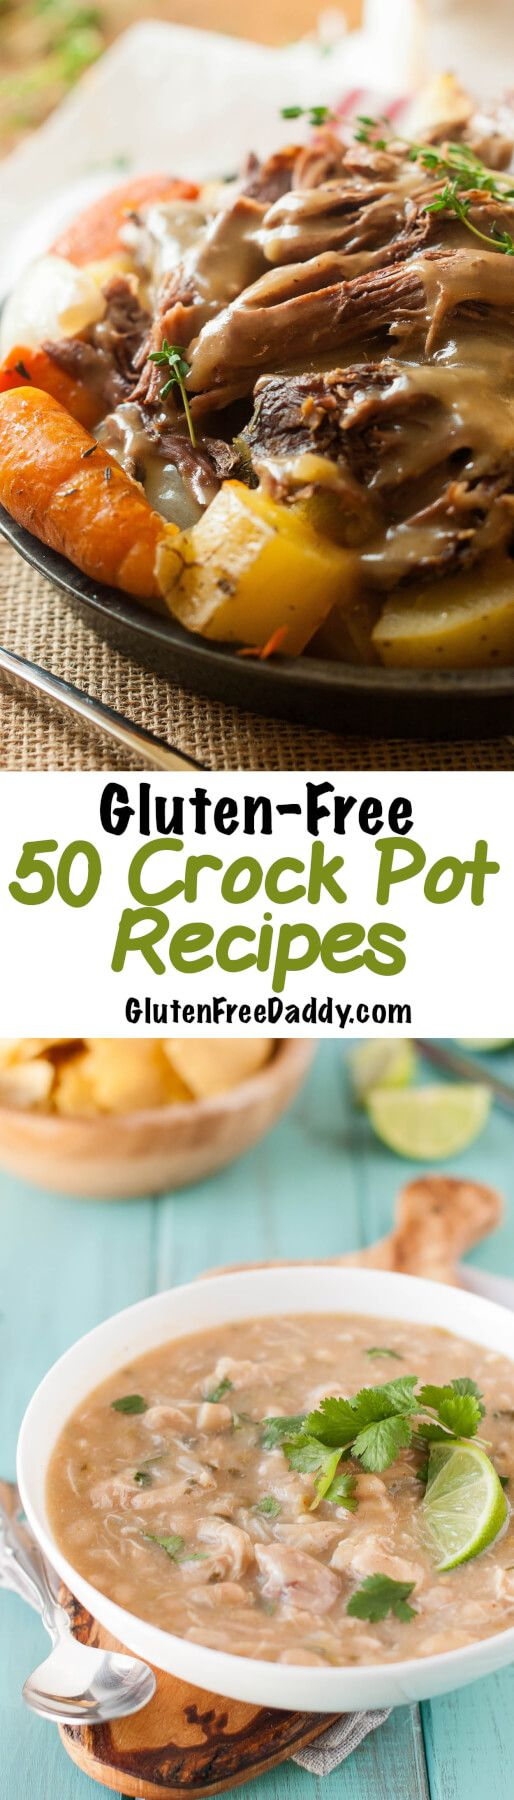 Wow!... can you believe I have a list of fifty, yes 50 gluten-free crock pot recipes! I hope you will check out this list of gluten free crock pot recipes.